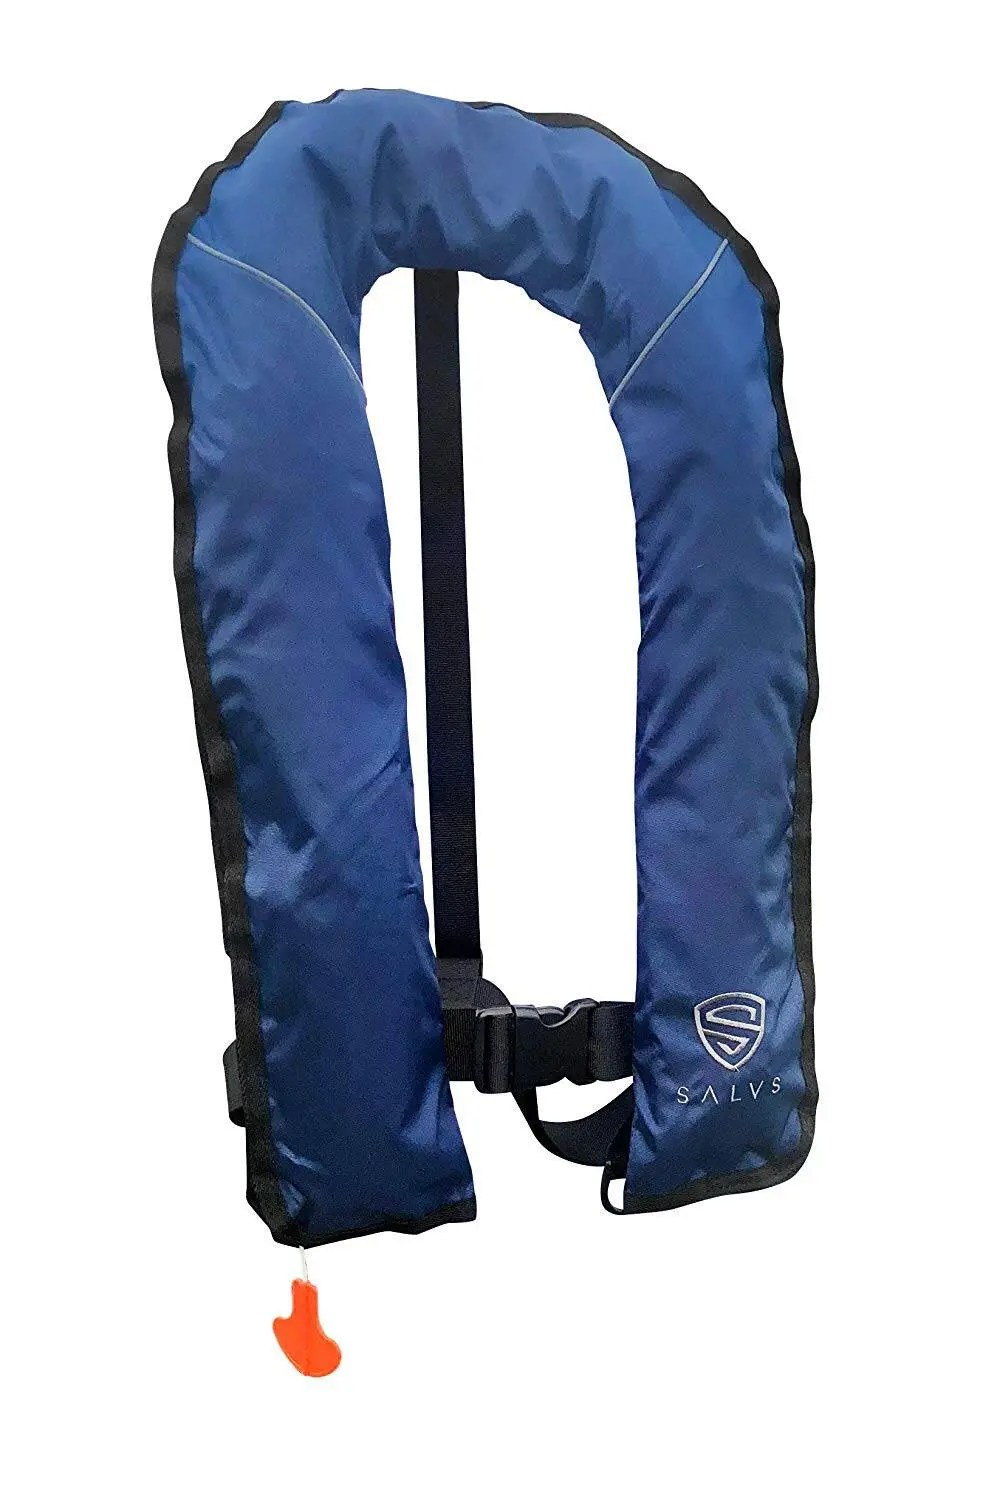 SALVS Manual Inflatable Life Jacket for Adults